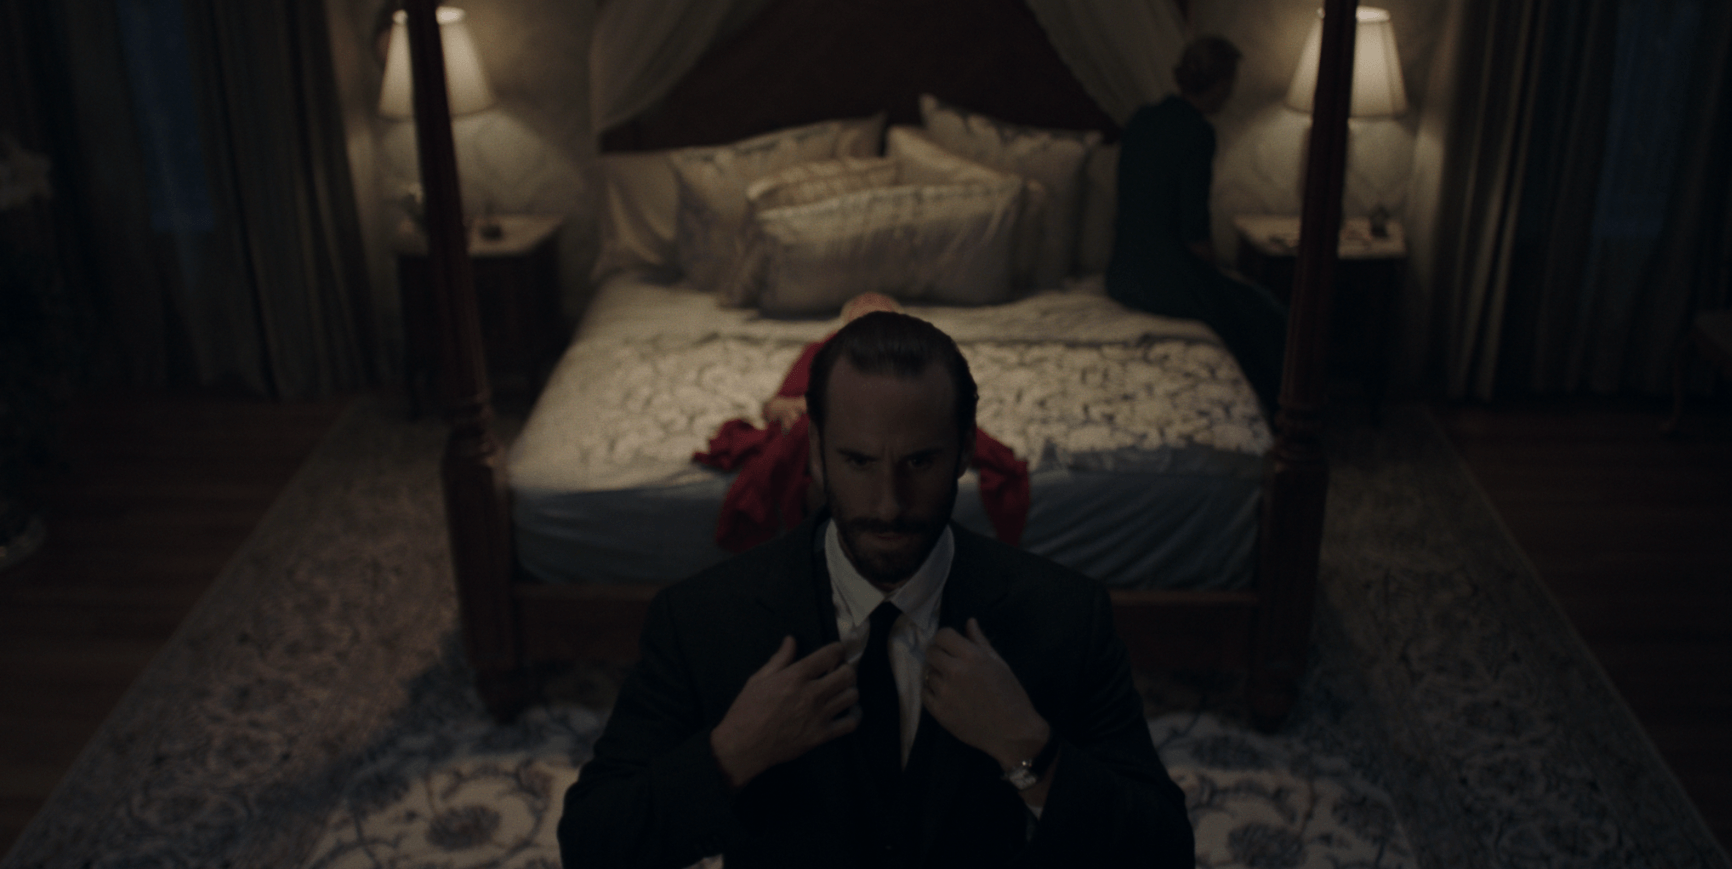 First Image from THE HANDMAID'S TALE: A Frightening Dystopia